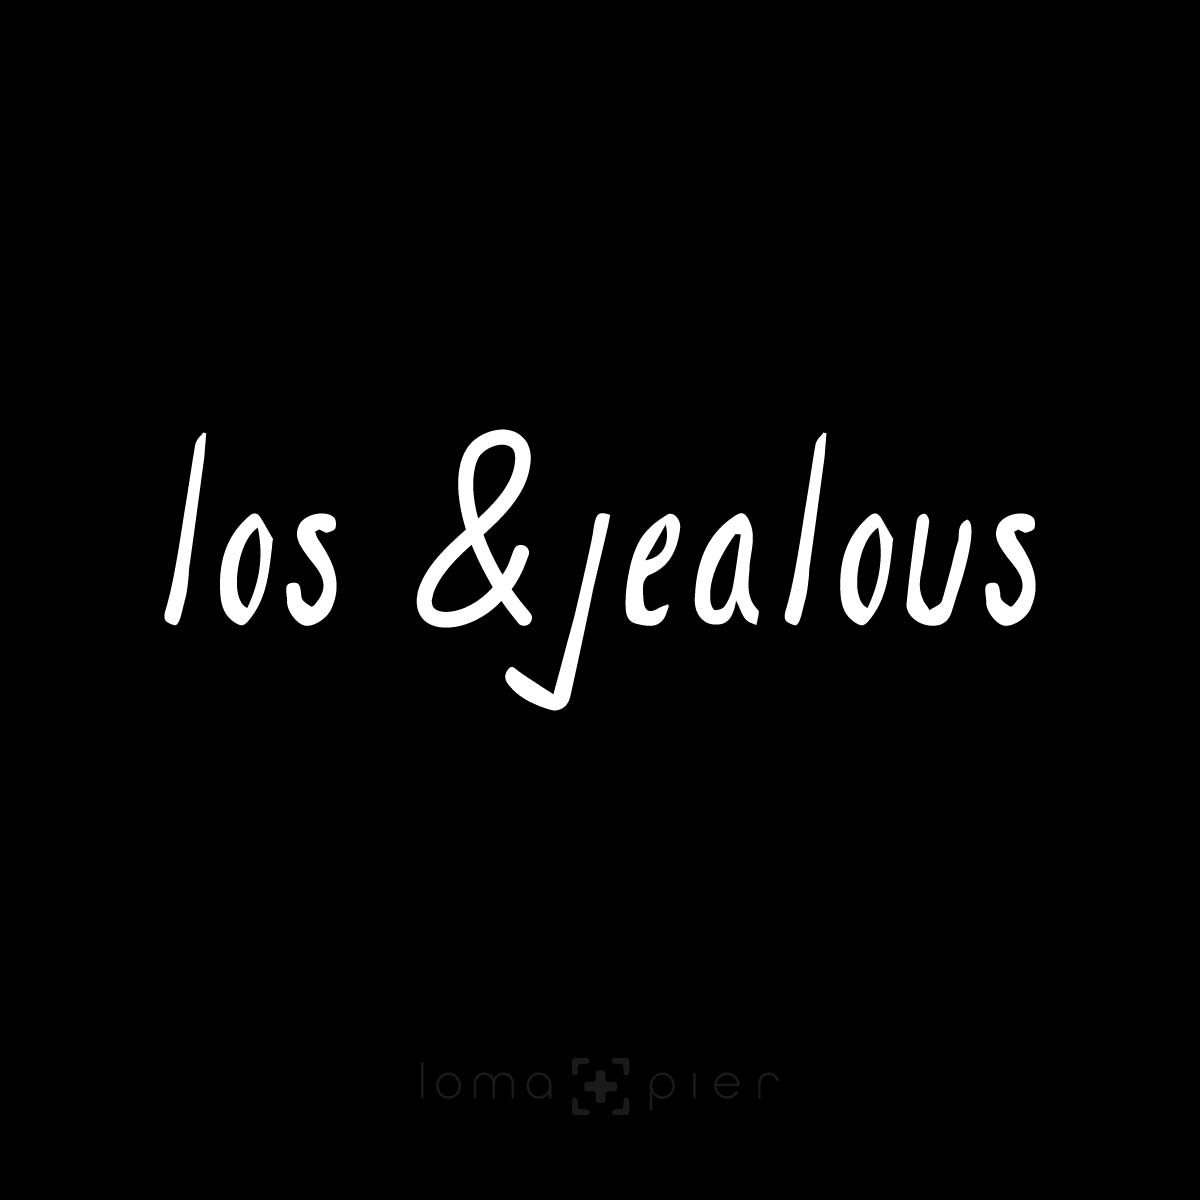 LOS &JEALOUS typography design by loma+pier hat store